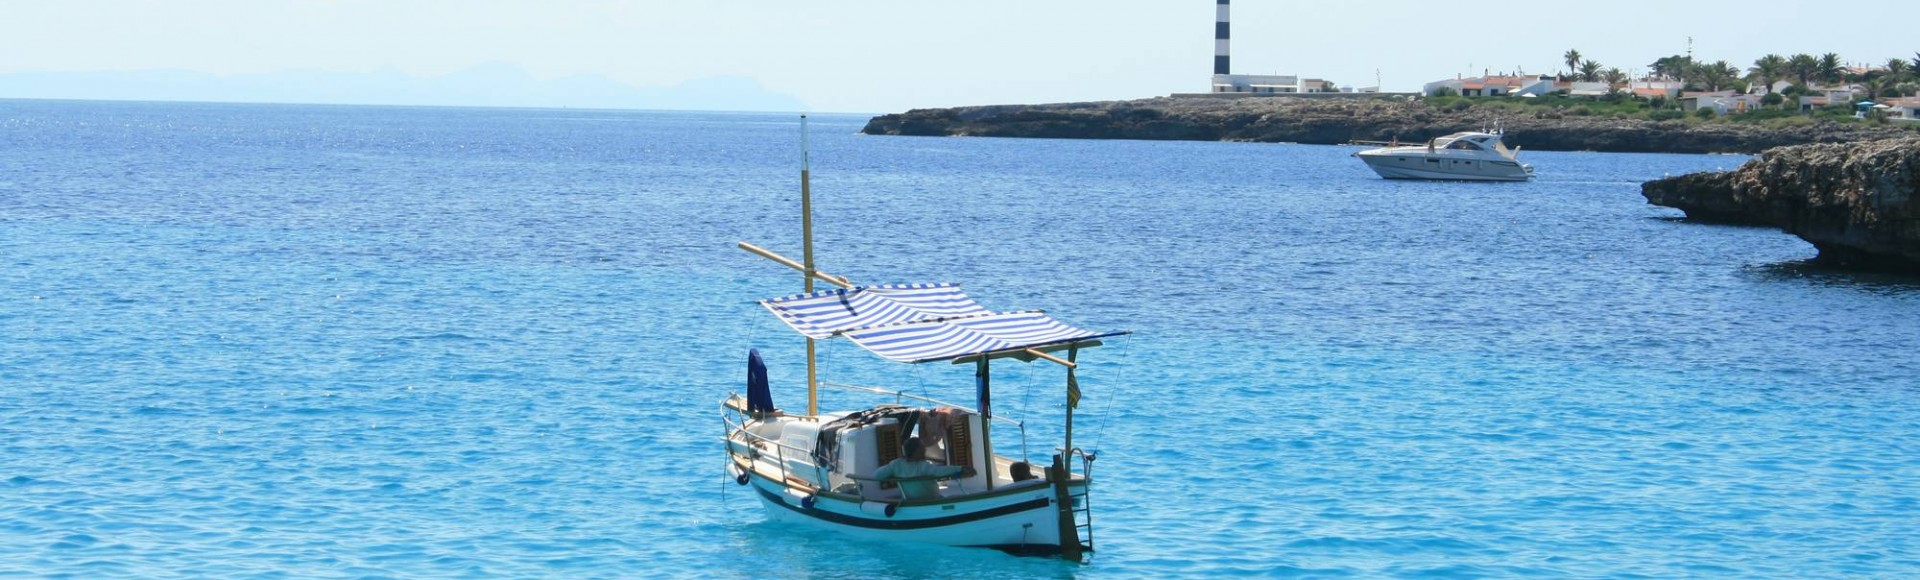 Enjoy Your Boat without Worries with Our Insurance